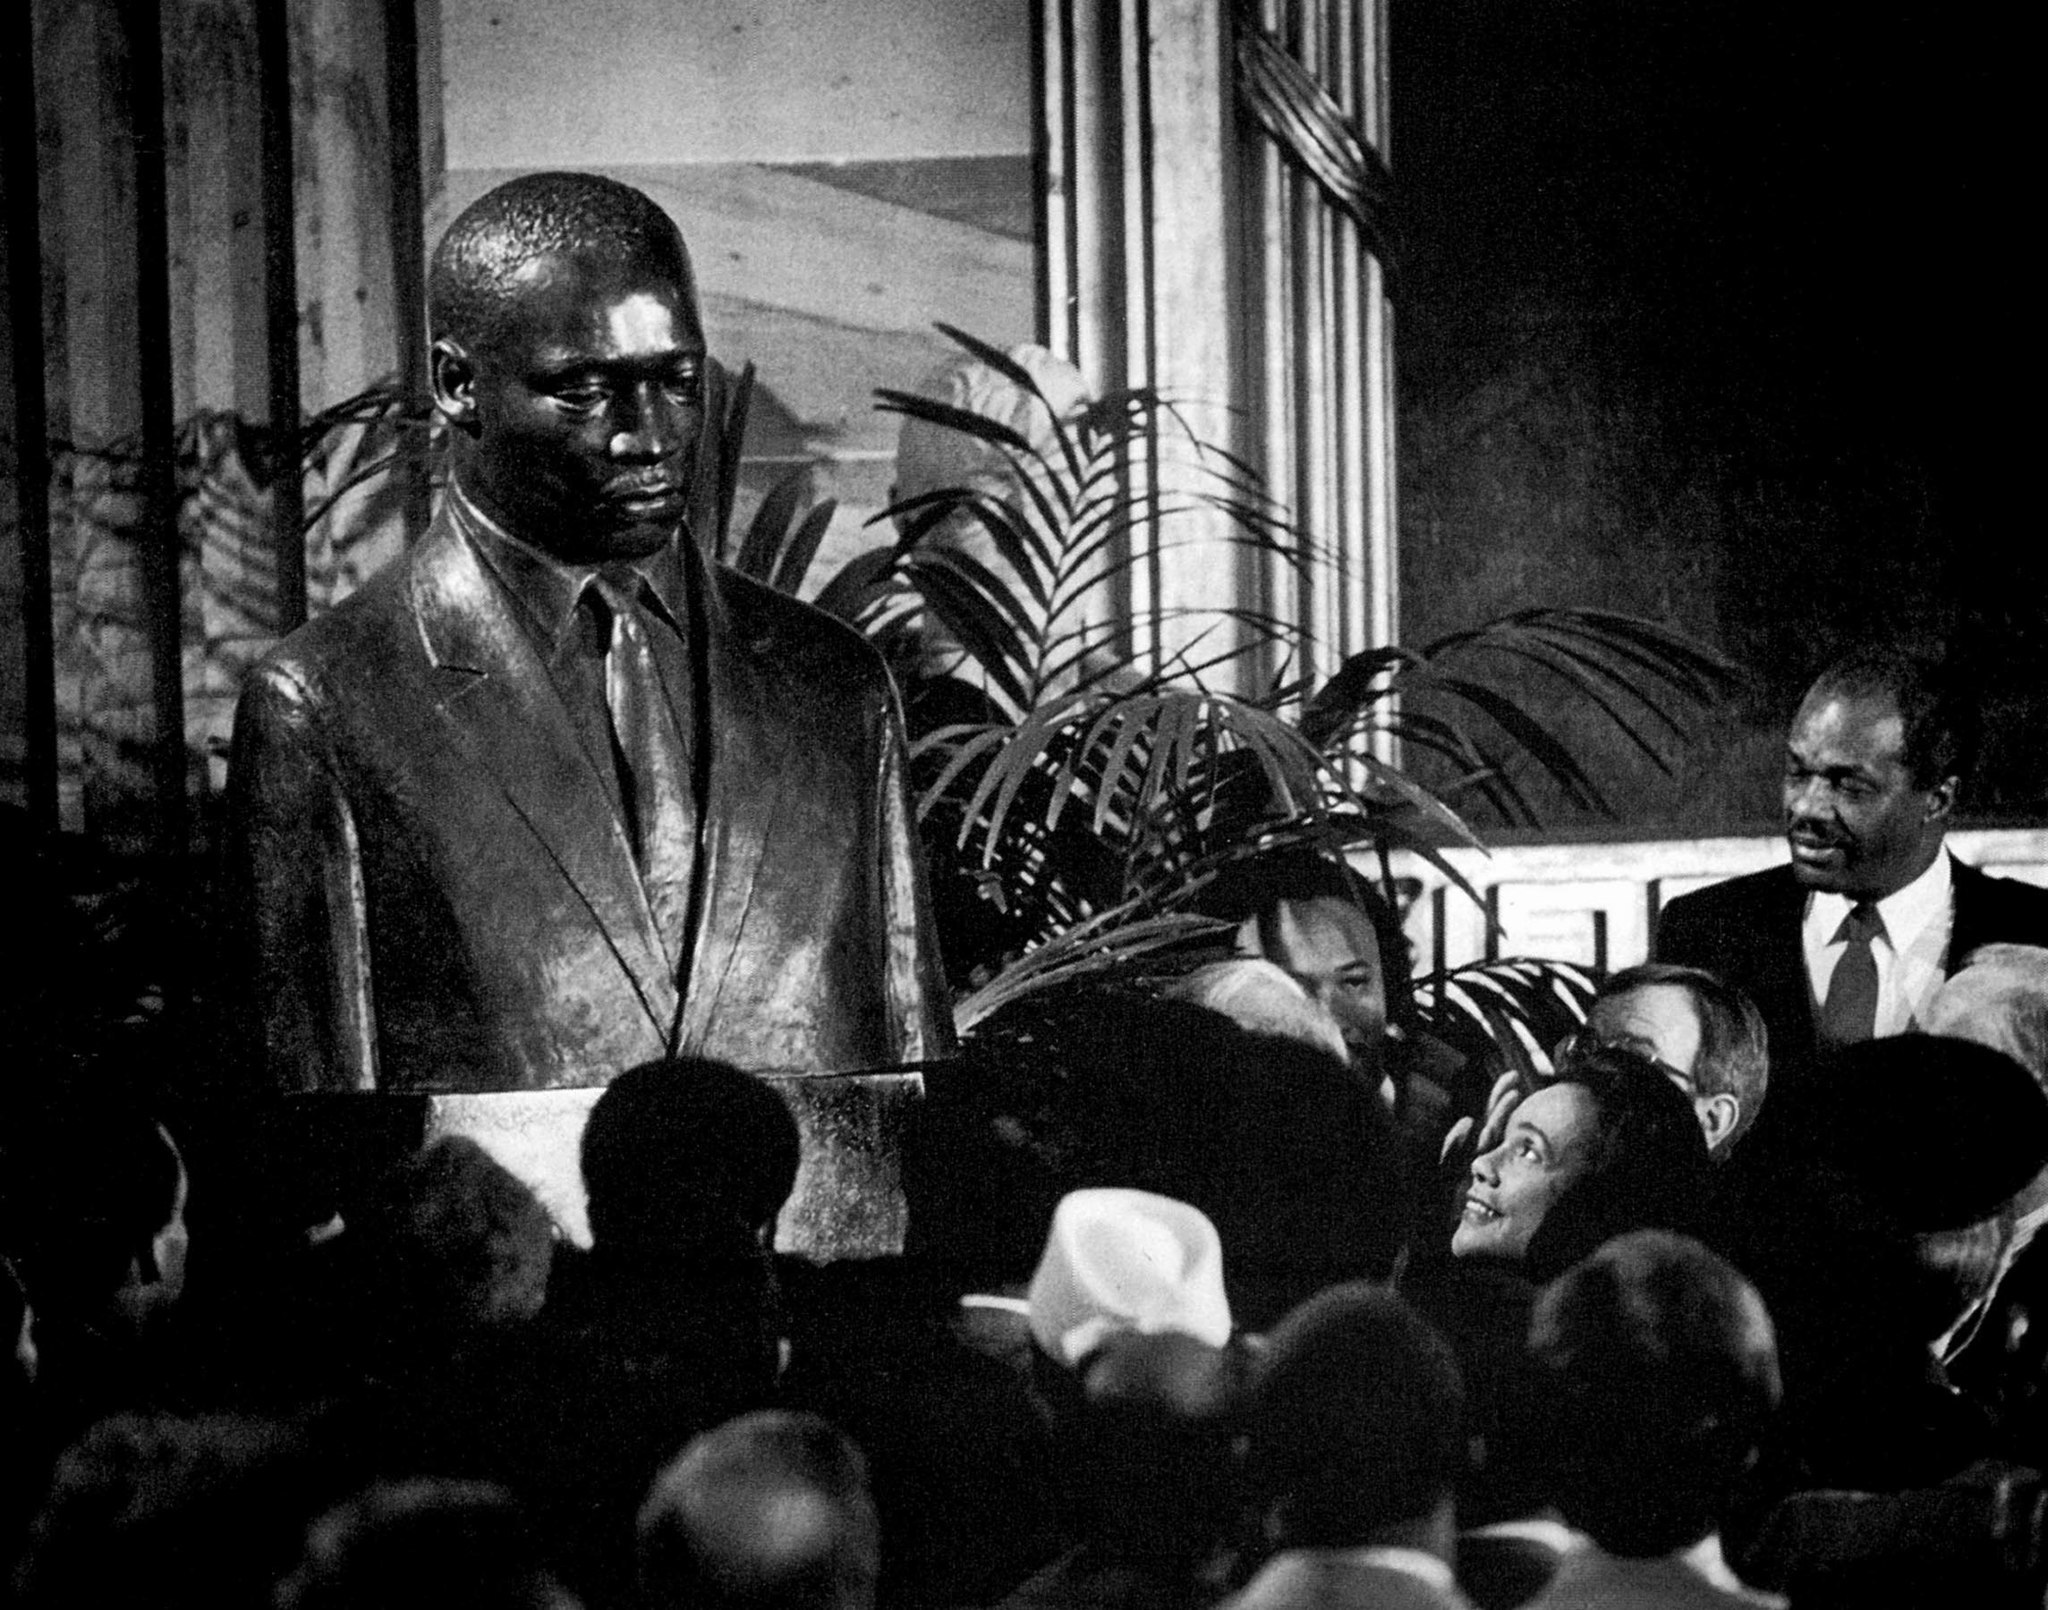 Jan. 16, 1987: Coretta Scott King, lower right, gazes up at a bronze bust of her late husband, Martin